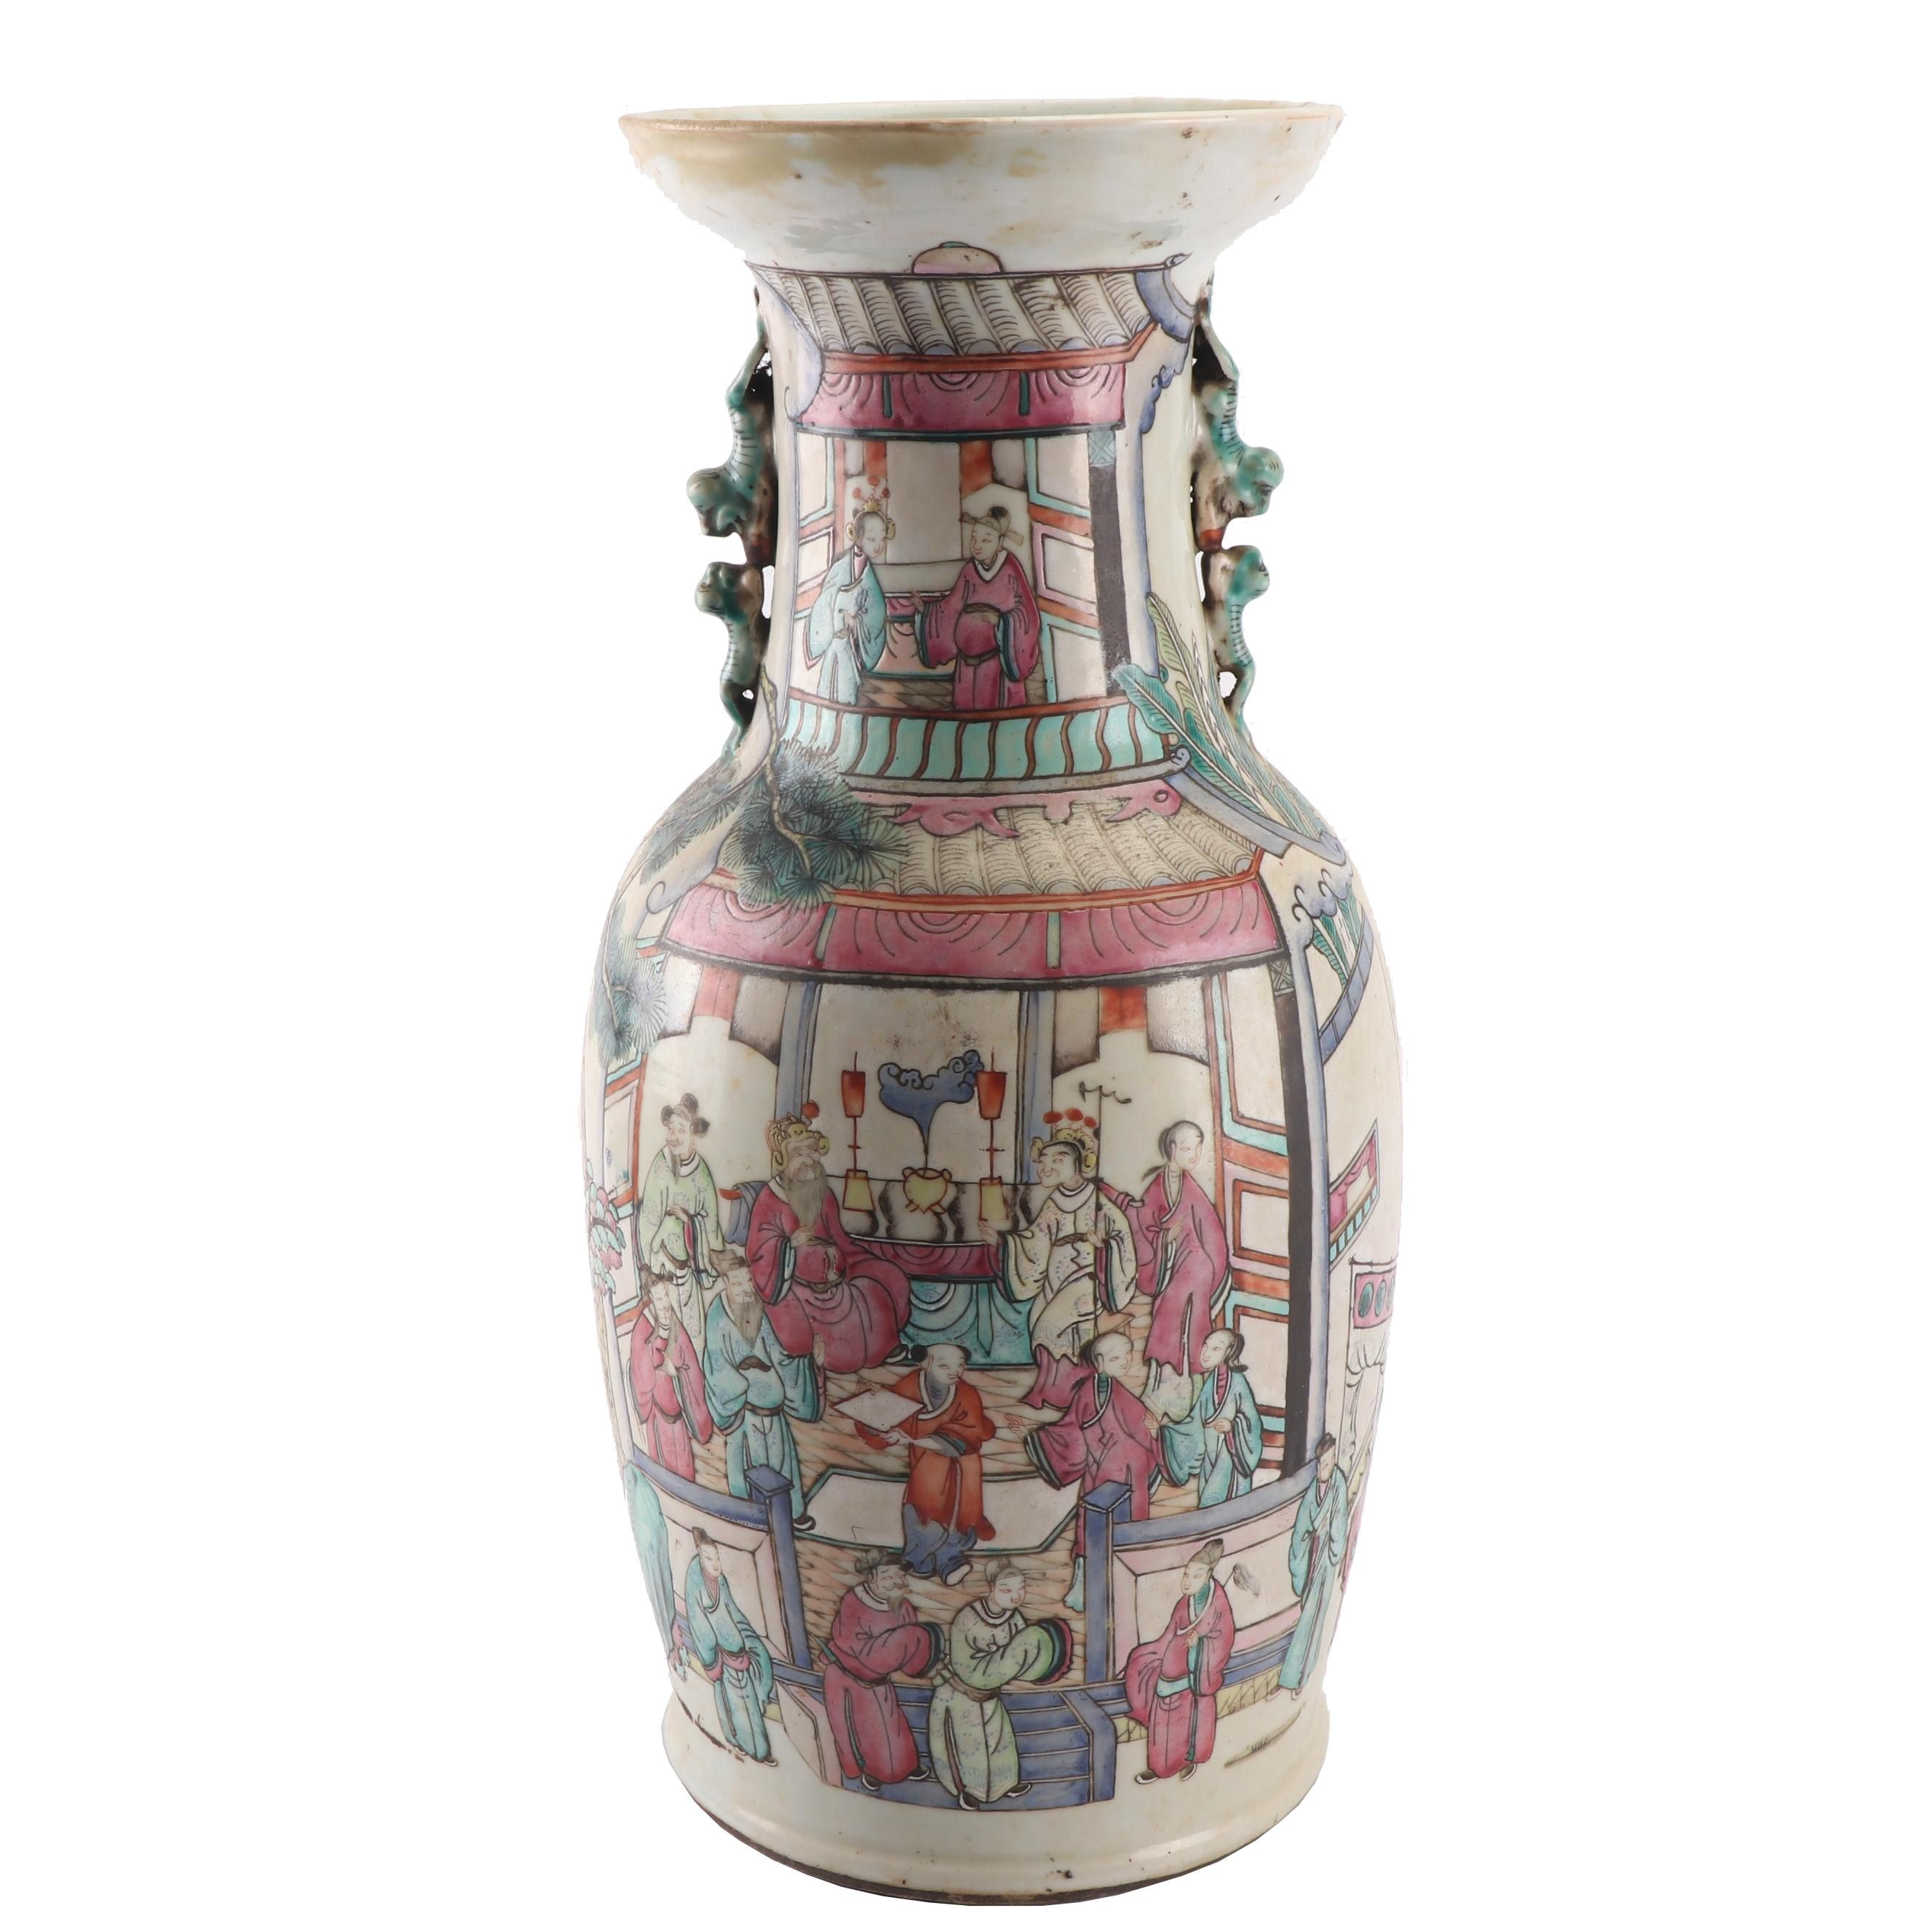 Chinese Hand-Painted Pictorial Scene Porcelain Vase, Late Qing/Republic